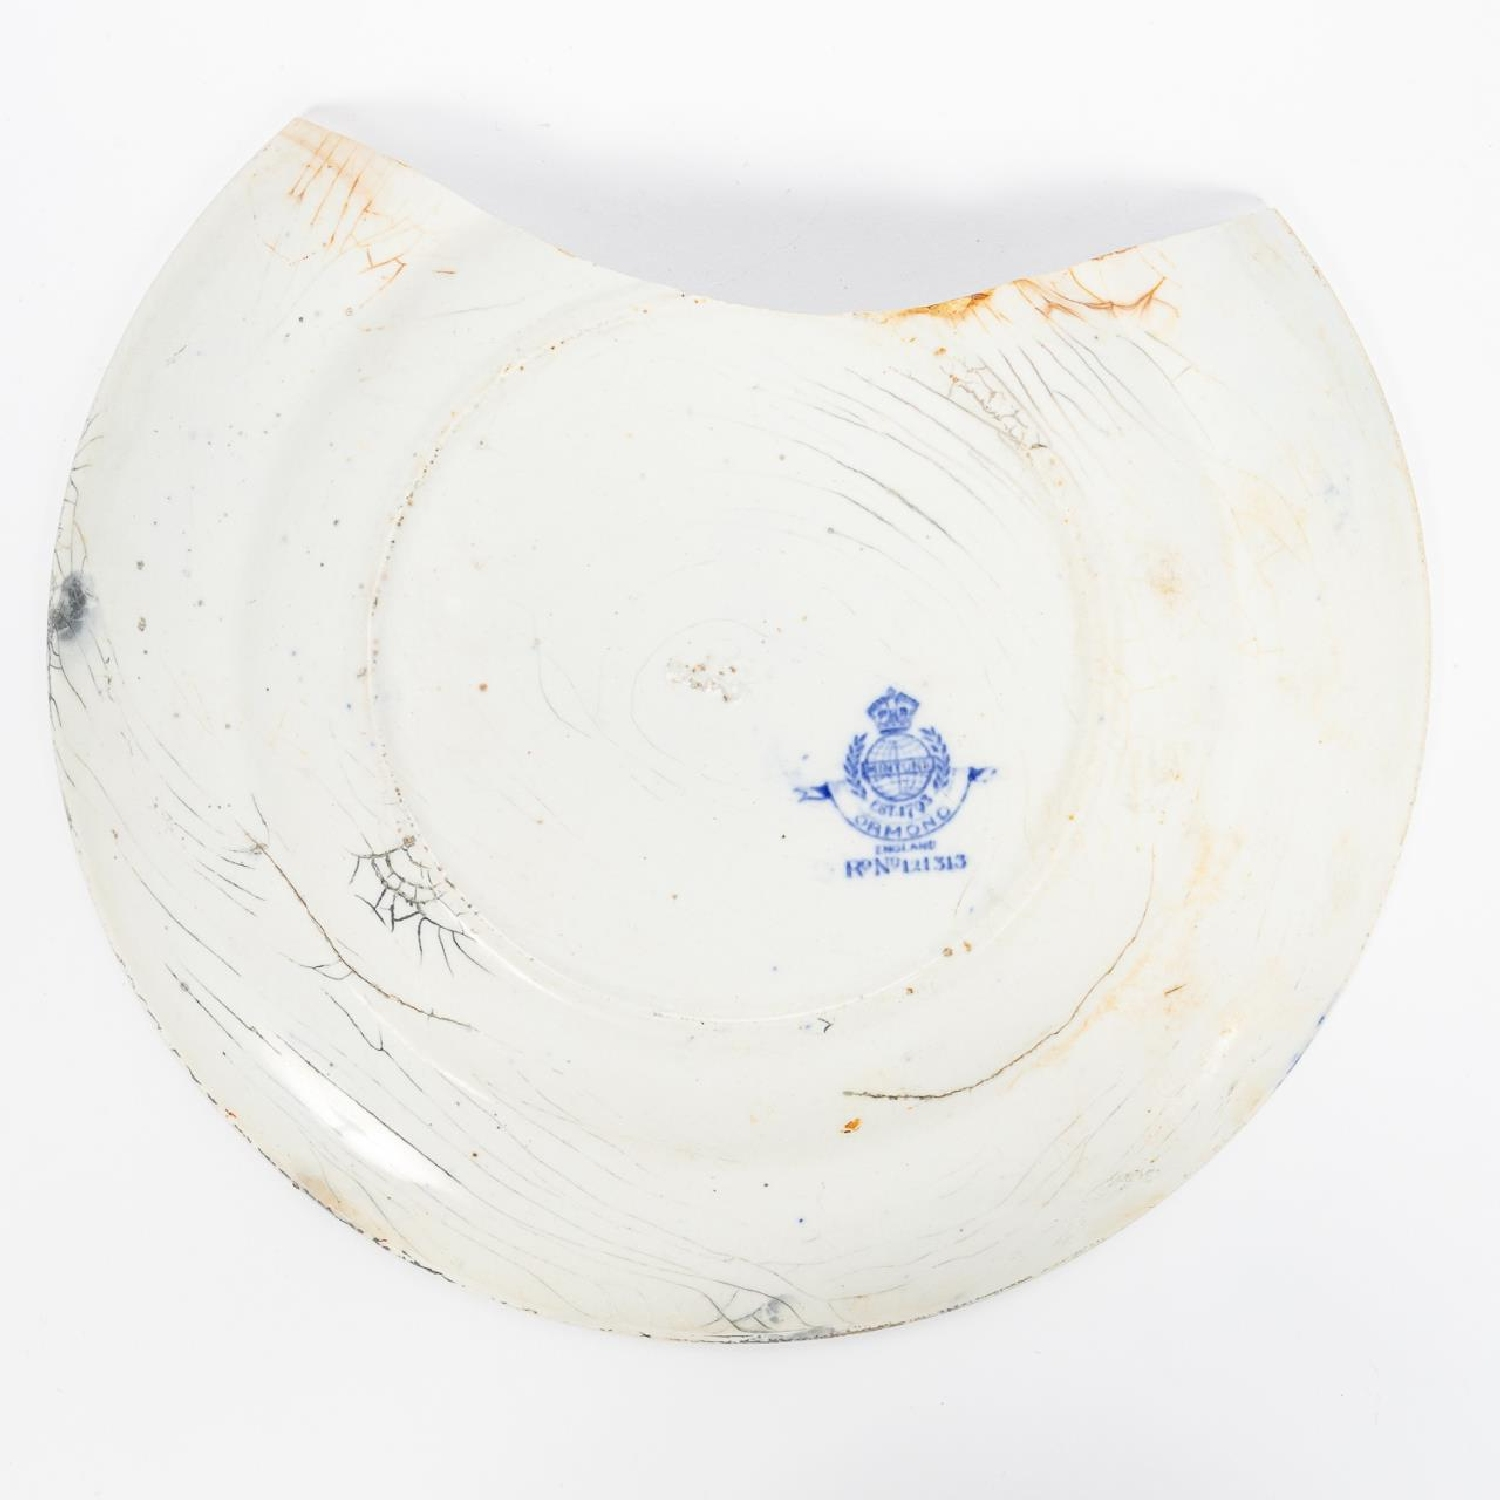 RMS CARPATHIA, SALVAGED FIRST CLASS PLATE - Image 2 of 5